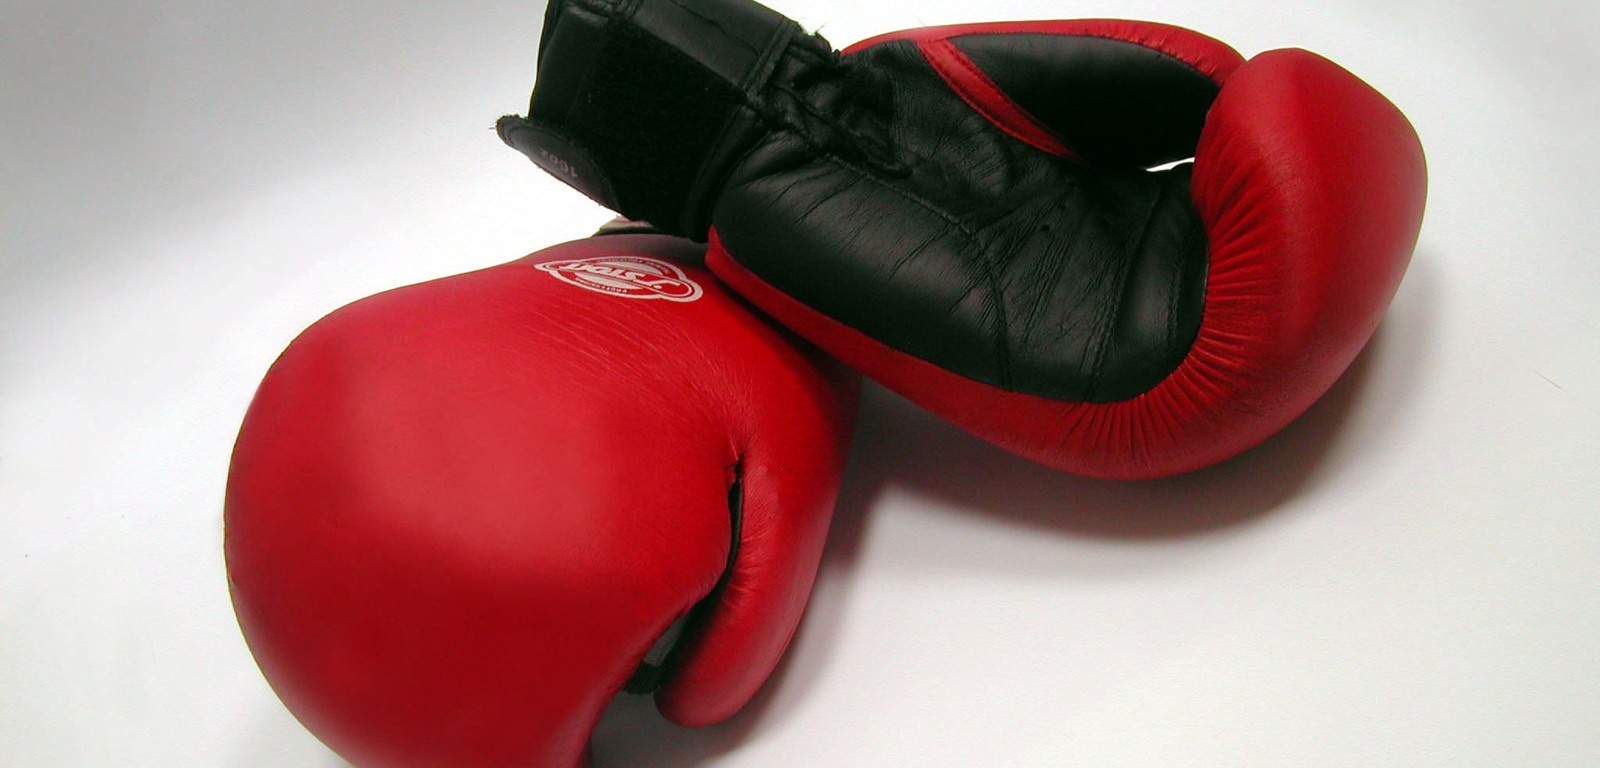 boxing glove, different theological views disagreement